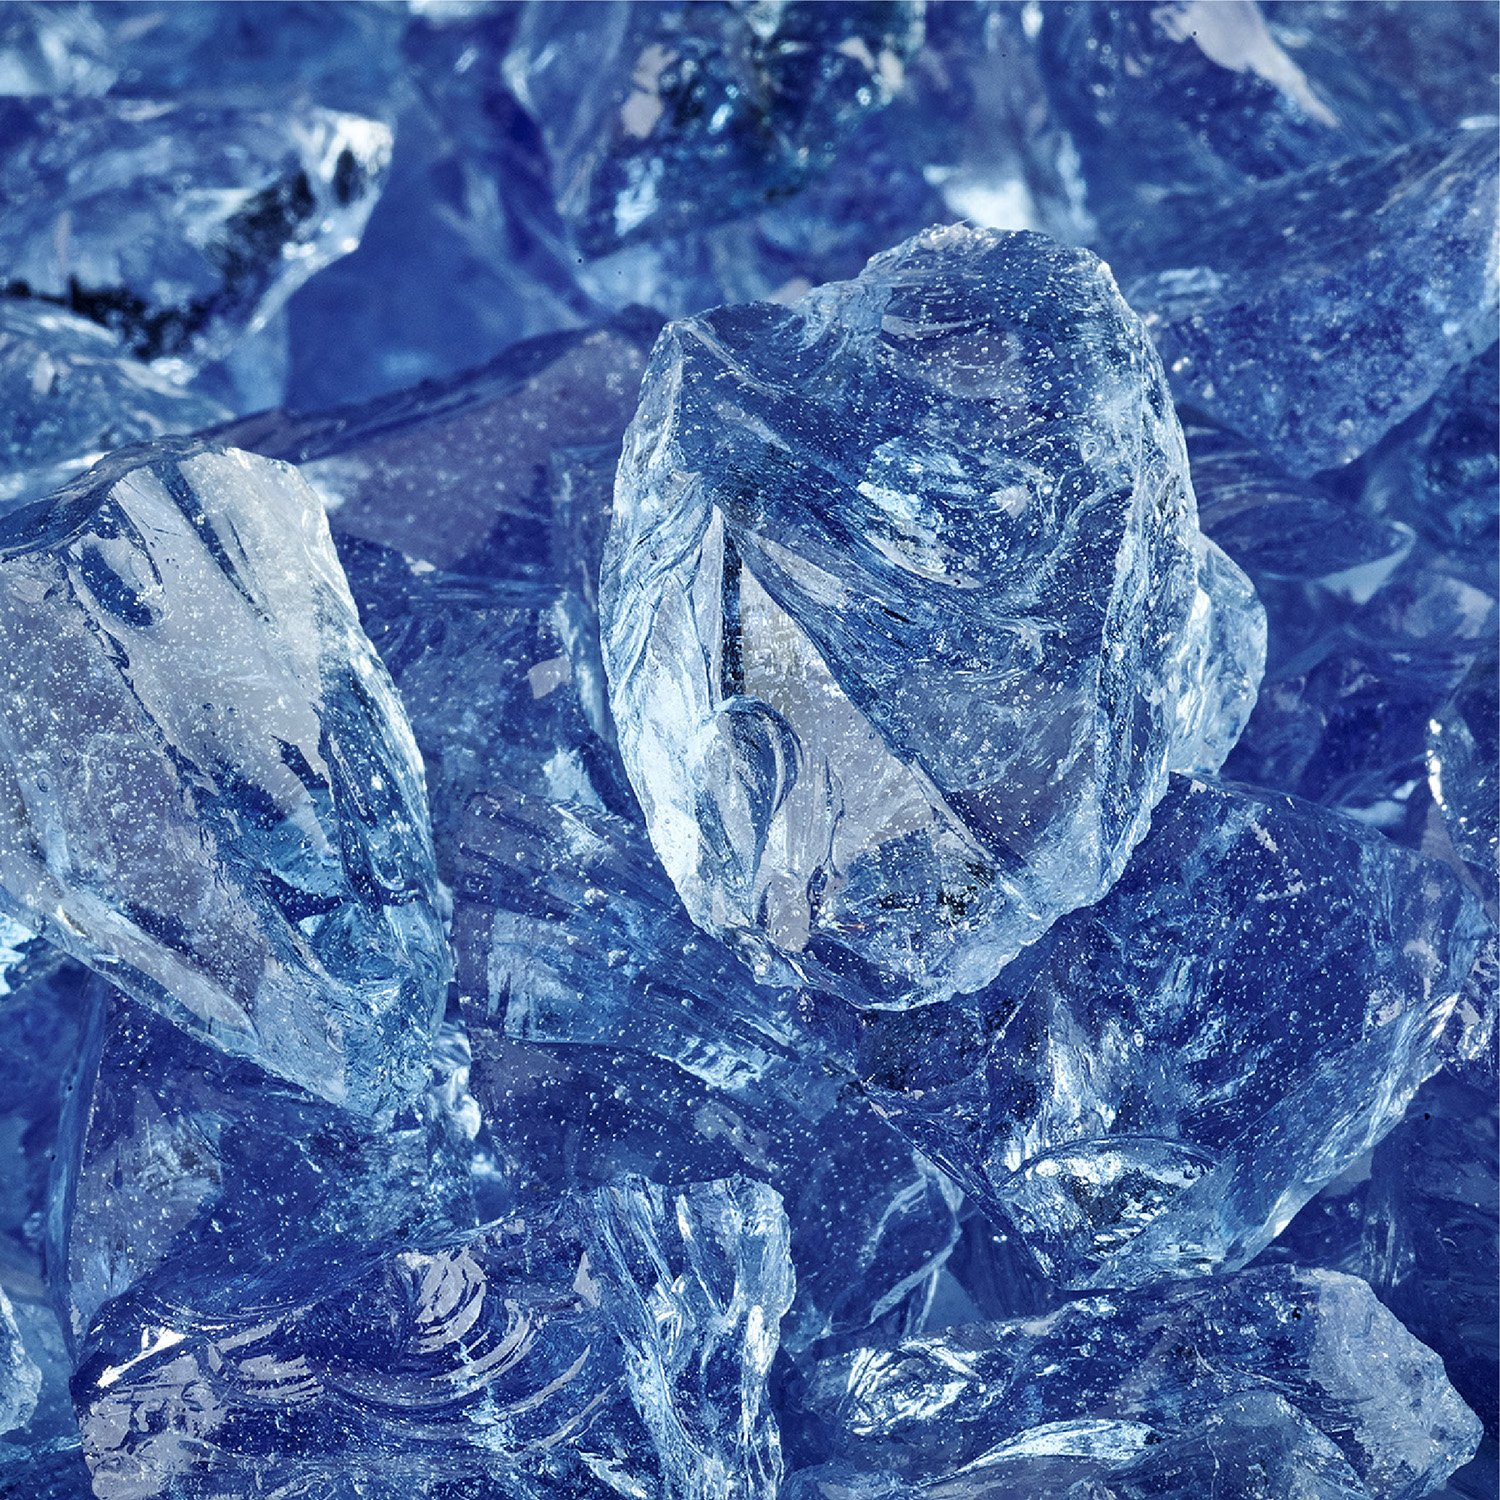 Lake Tahoe Blue - Crushed Fire Glass for Indoor and Outdoor Fire Pits or Fireplaces | 10 Pounds | 1/2 Inch - 3/4 Inch